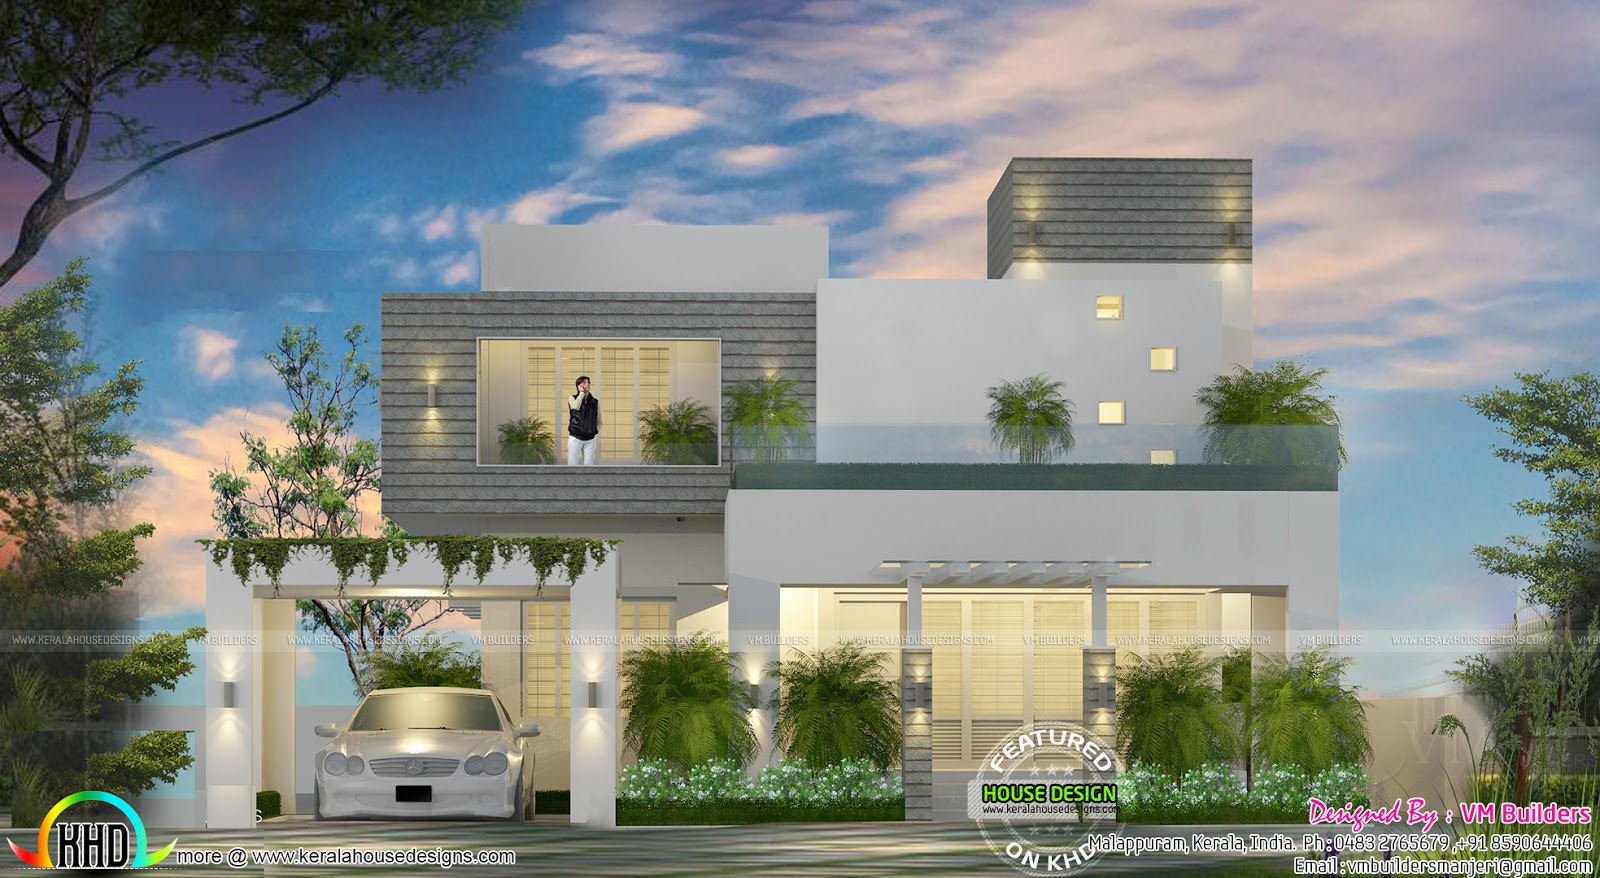 House design under 50 lakhs - Design Style Contemporary Estimated Cost 50 Lakhs Including Interior 75555 May Change Time To Time Place To Place Plot Area 11 Cent